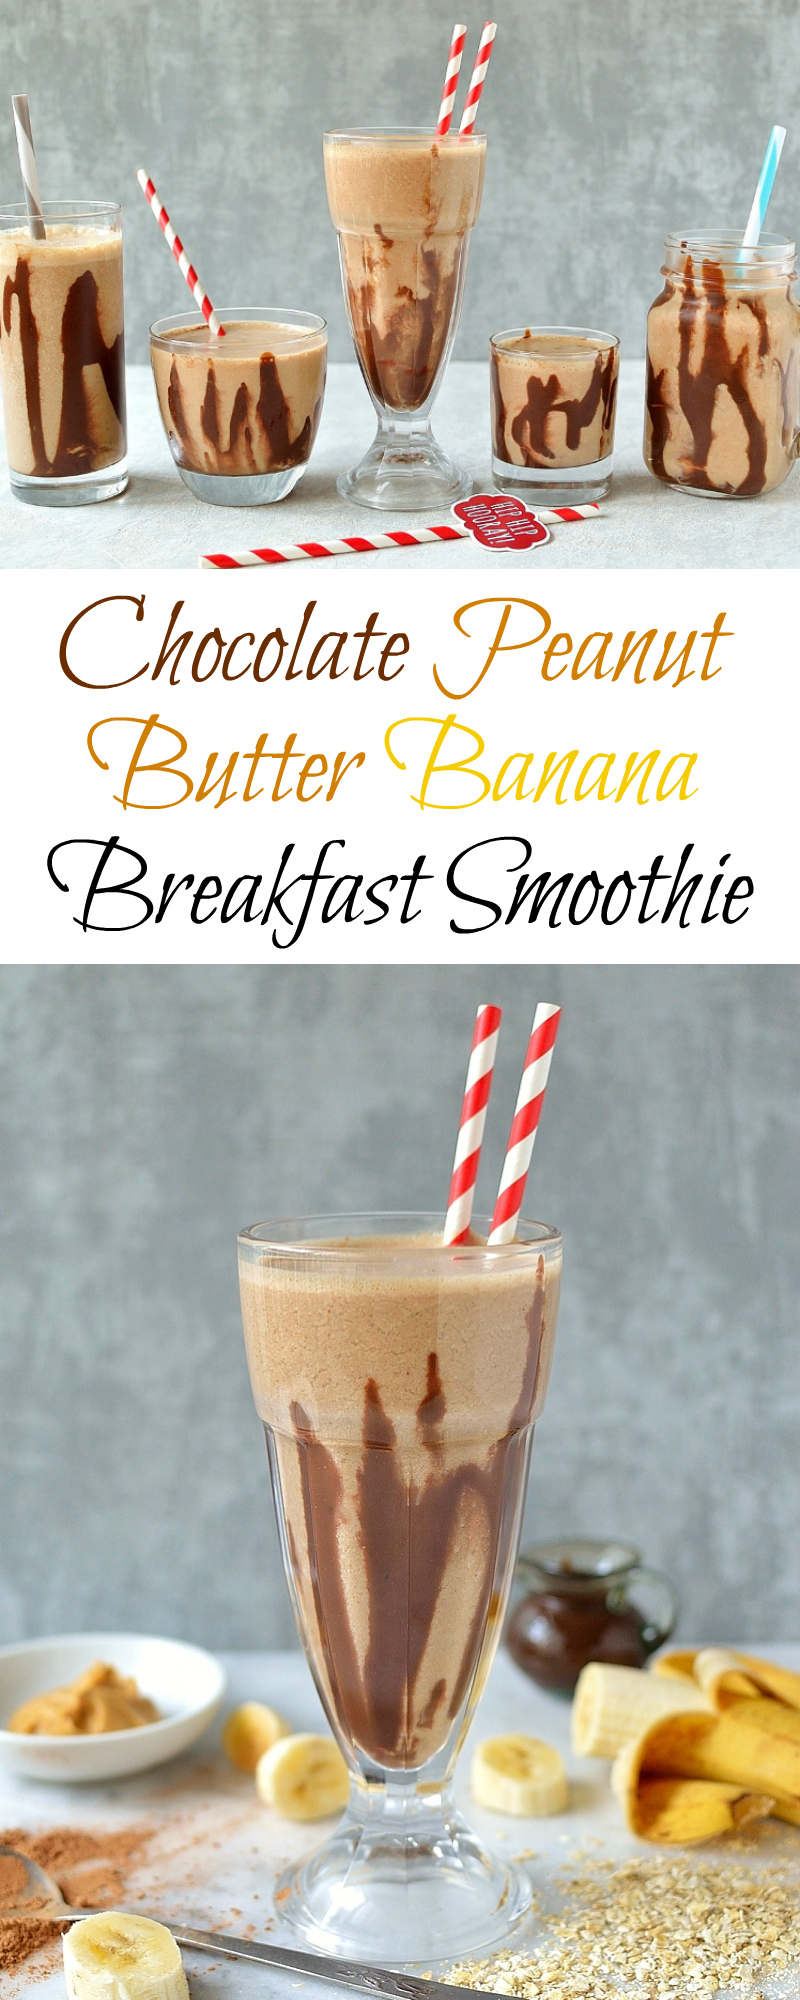 Chocolate peanut butter banana breakfast smoothie pinterest